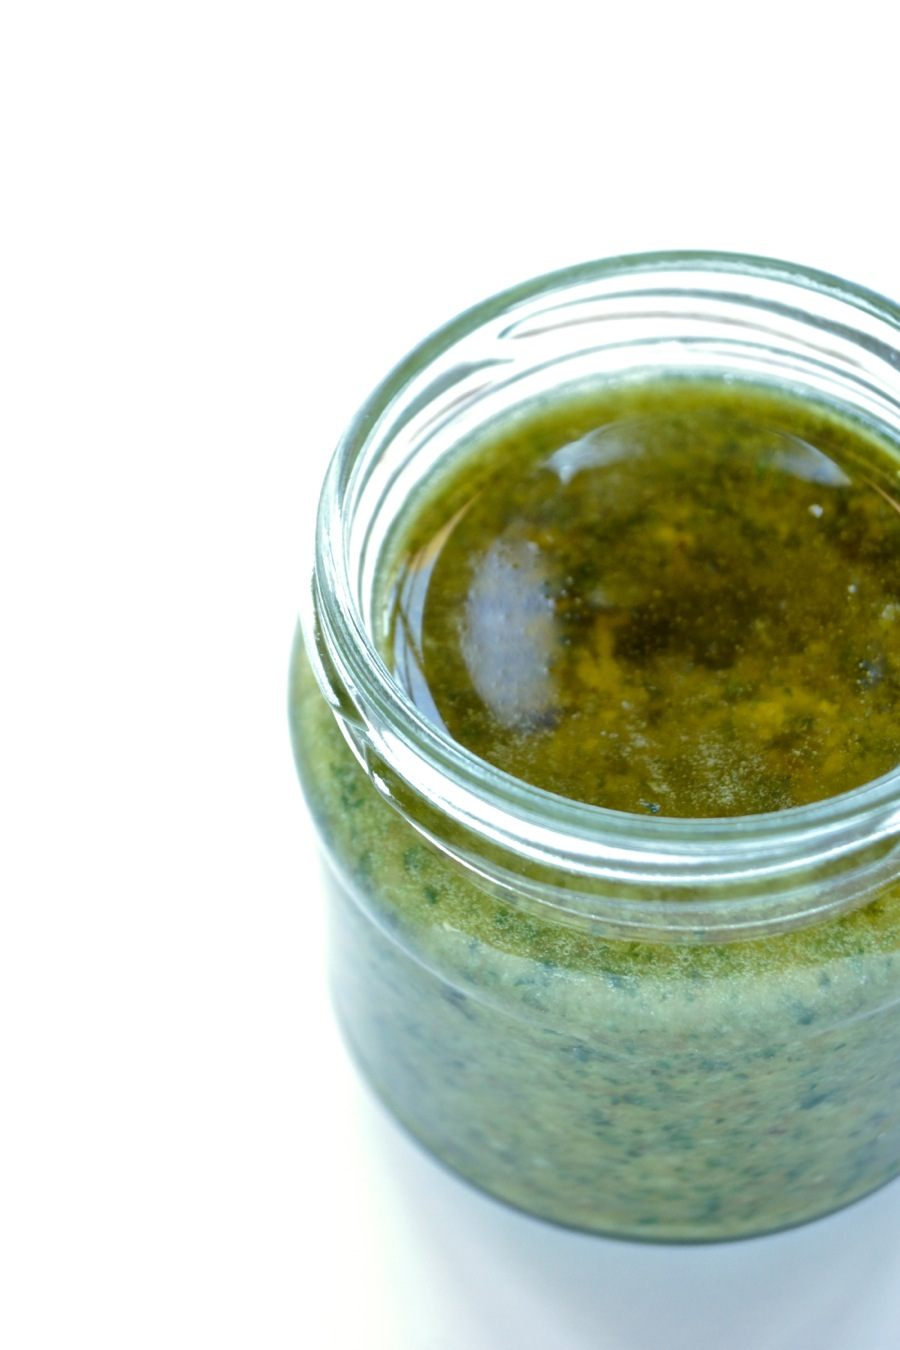 A glas of vegan basil pesto